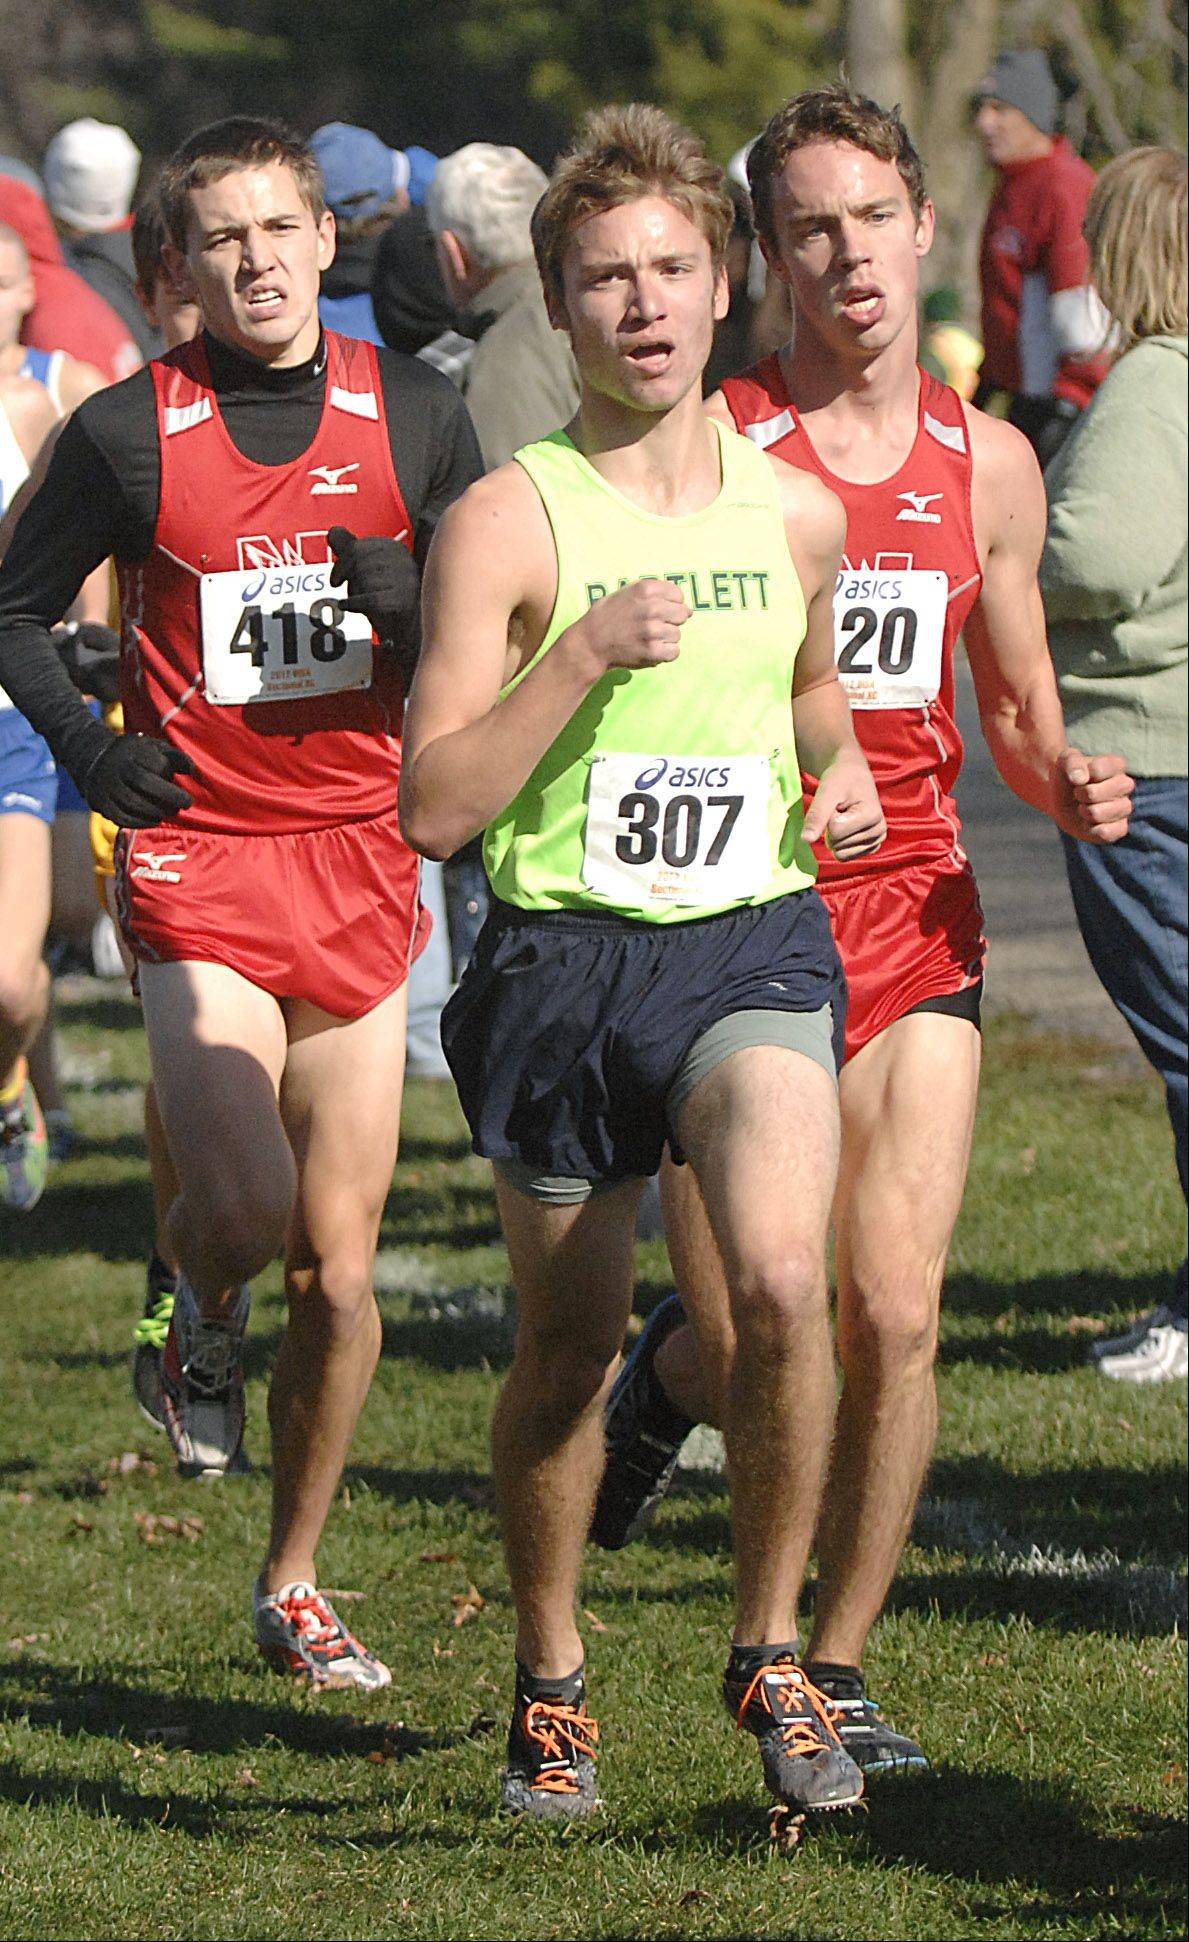 Bartlett's Anthony Peters near the mile and half mark in the St. Charles East cross country sectional at LeRoy Oakes in St. Charles on Saturday, October 27.